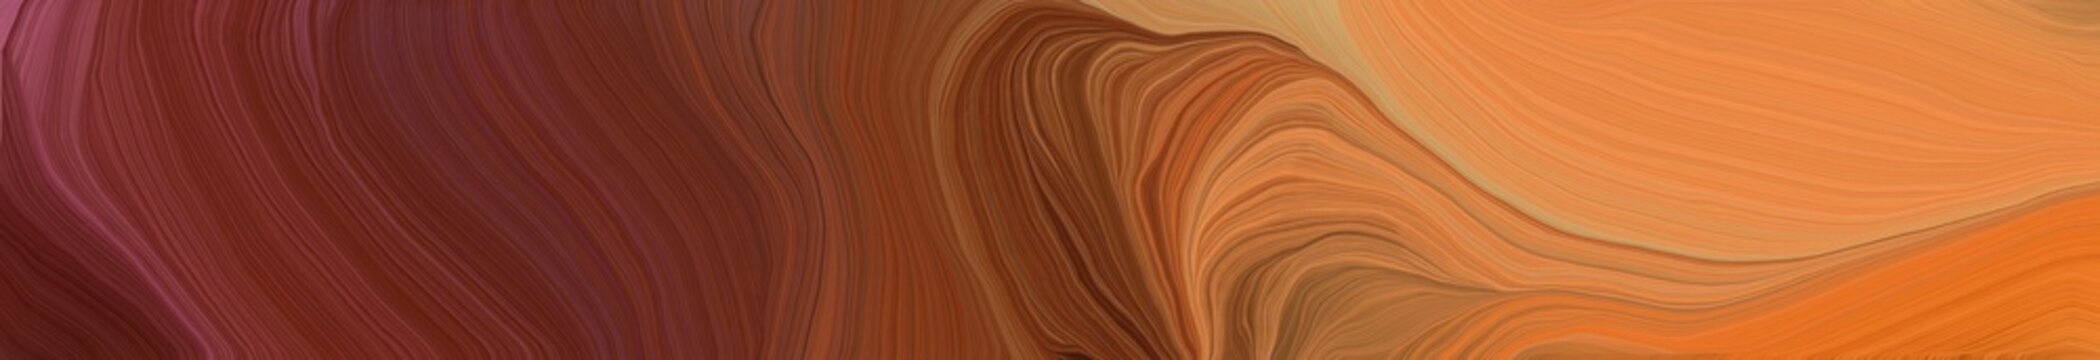 wide colored banner background with saddle brown, peru and coffee color. contemporary waves design